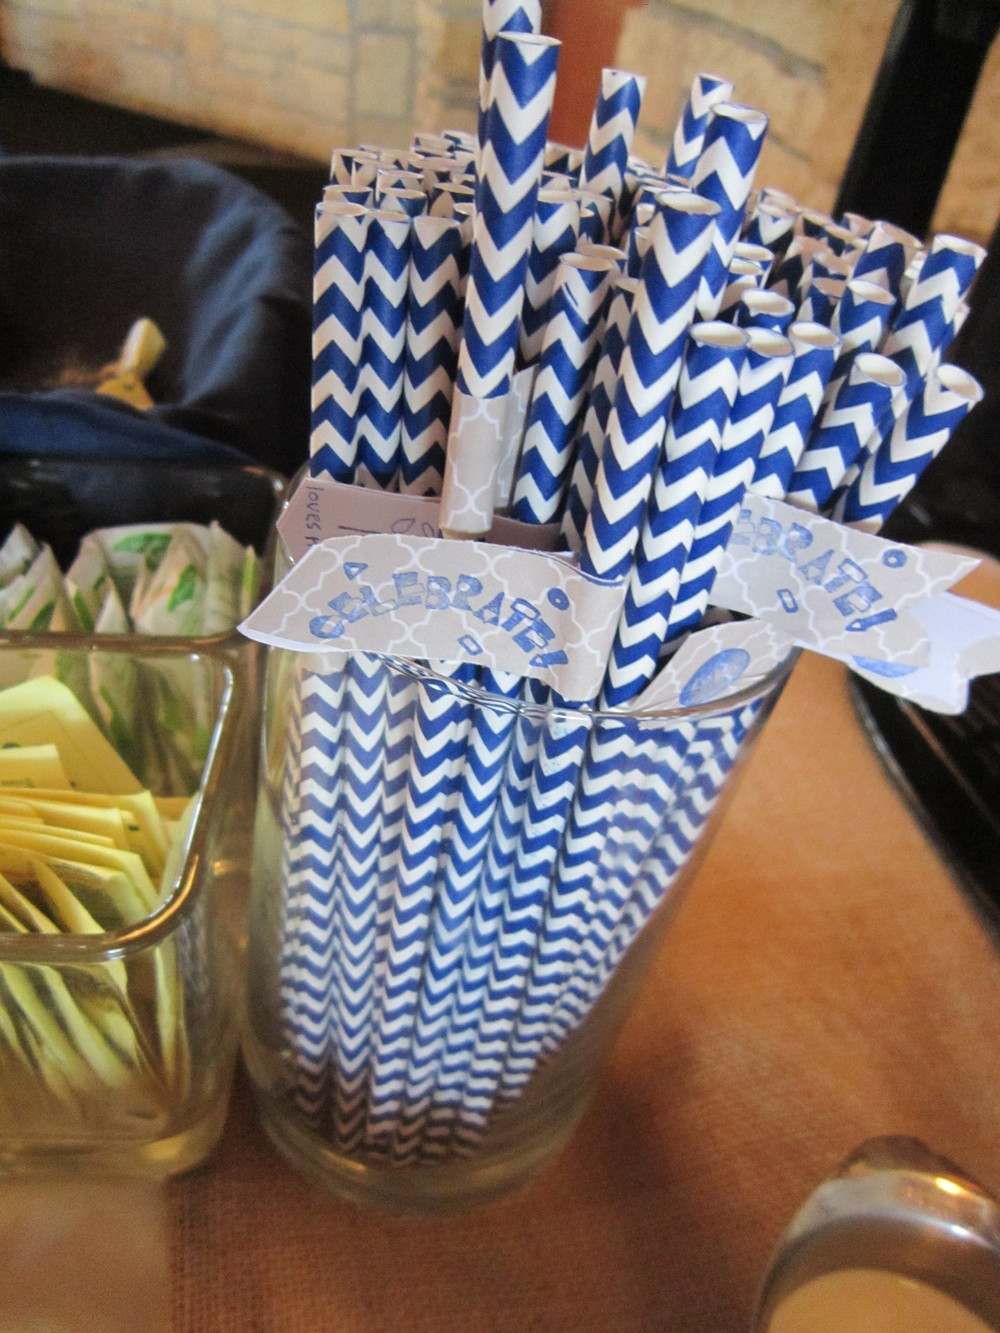 Color Coordinating Celebration Straws at a recent wedding reception at the Crown Room Banquet Center in Rogers, MN.